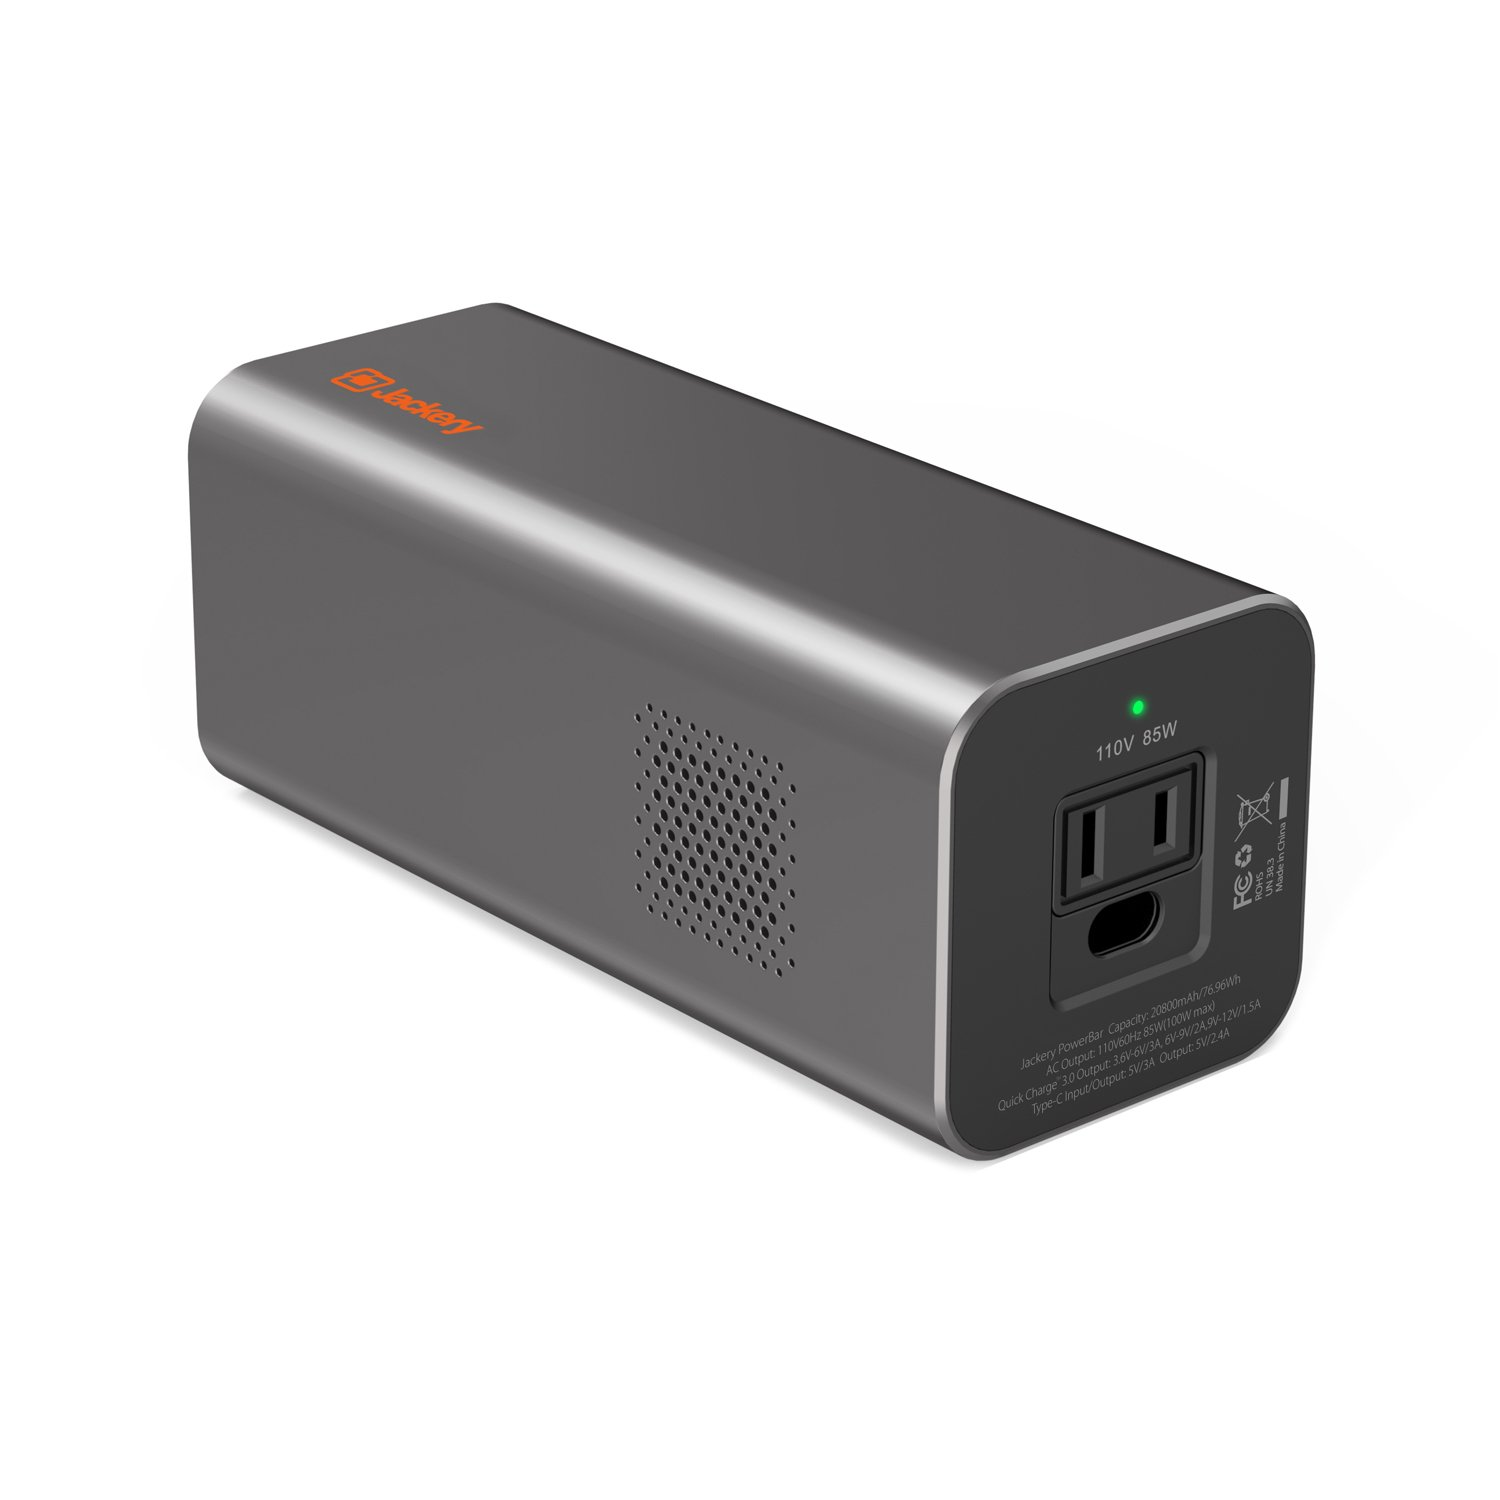 AC Outlet Portable Laptop Charger Power Outdoors(TSA-Approved), Jackery PowerBar 77Wh/20800mAh 85W (100W Peak) Travel Laptop Power Bank External Battery Pack for HP,Notebooks,MacBook and Other Laptops by Jackery